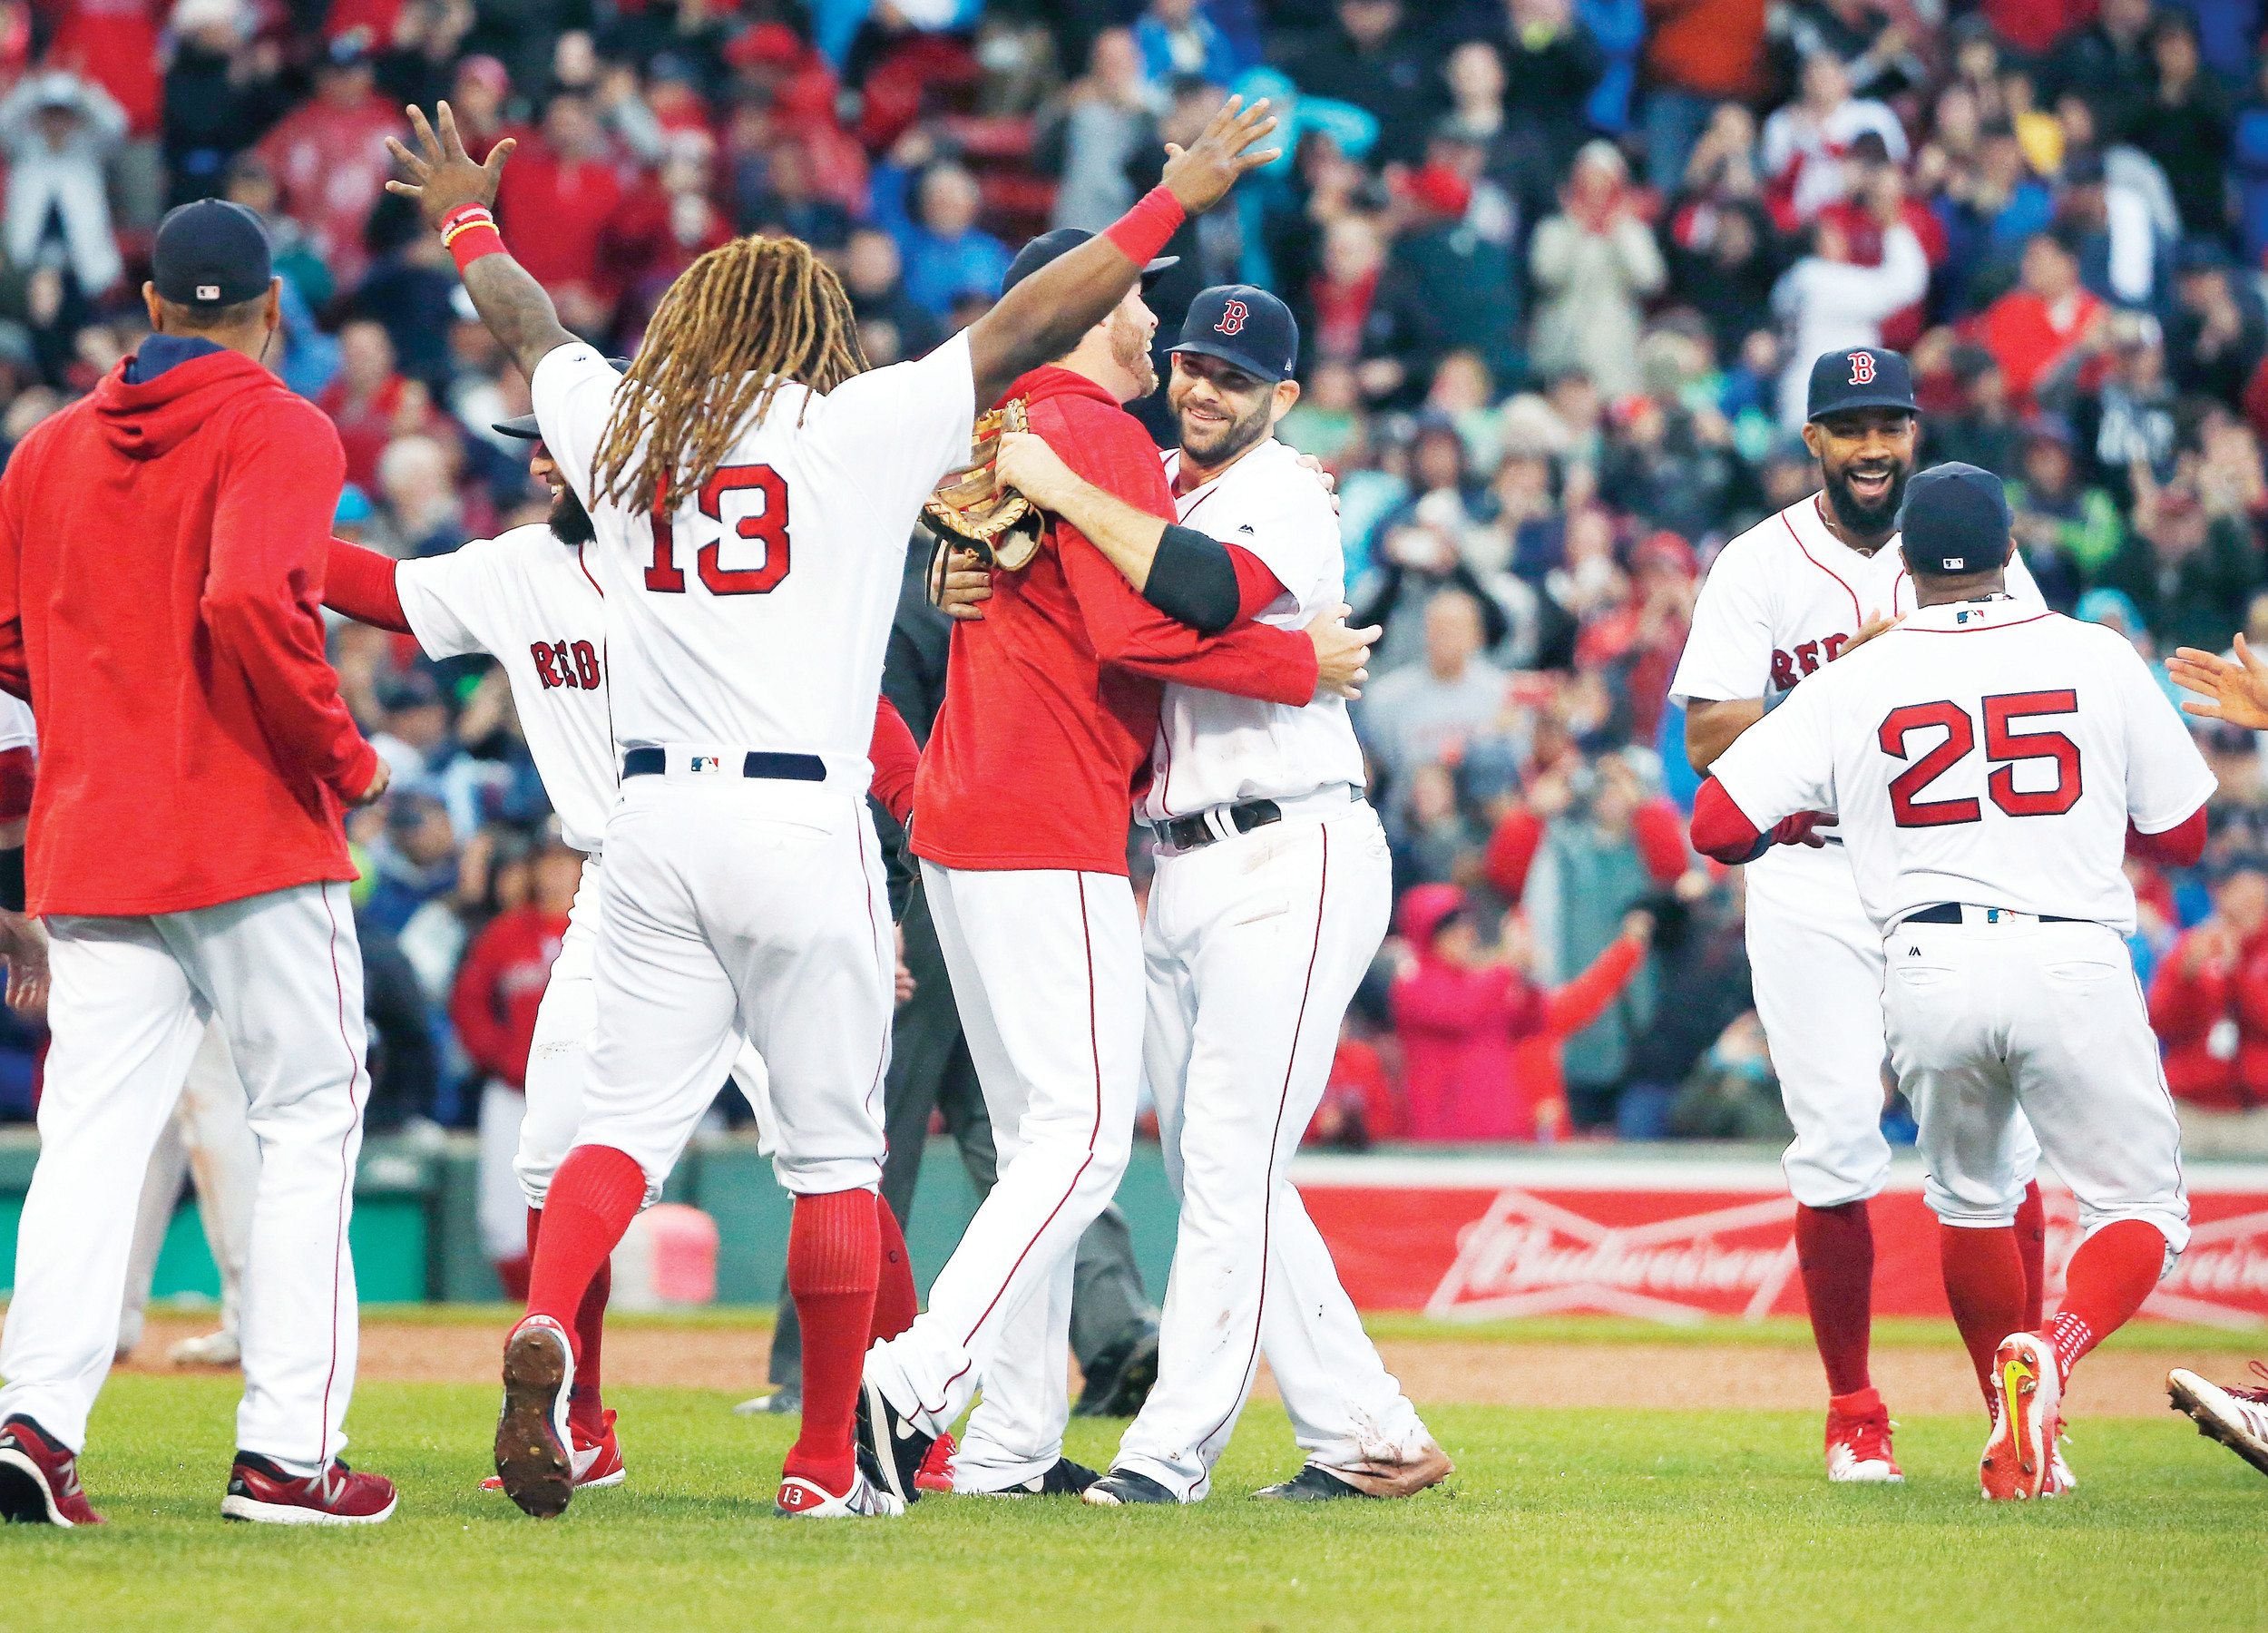 The Boston Red Sox celebrate after defeating the Houston Astros 6-3 on Saturday in Boston to clinch the American League East Division championship.